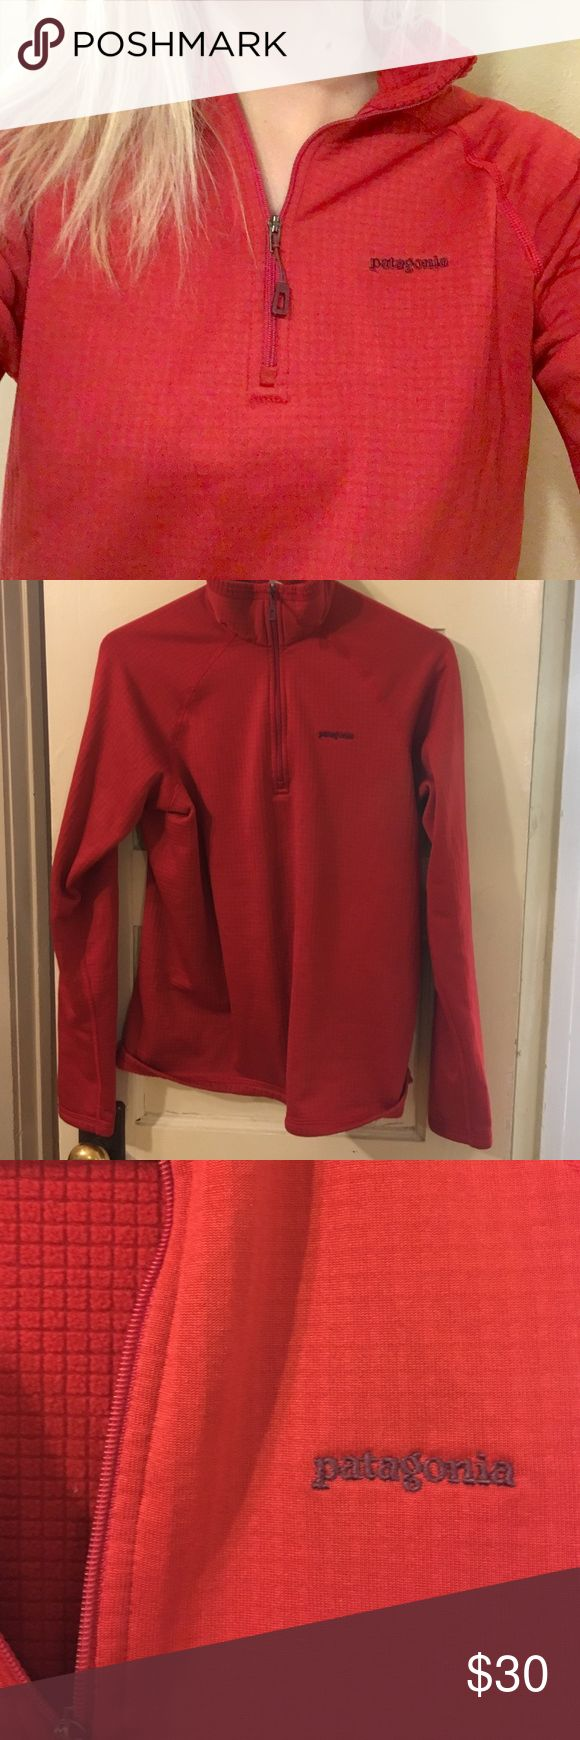 Women's Red Patagonia Zip-up This thin but VERY warm Patagonia zip-up is super comfy with a smooth outside and fleece square pattern inside. It's a half zip up and women's size M. Makes a perfect base layer. Patagonia Tops